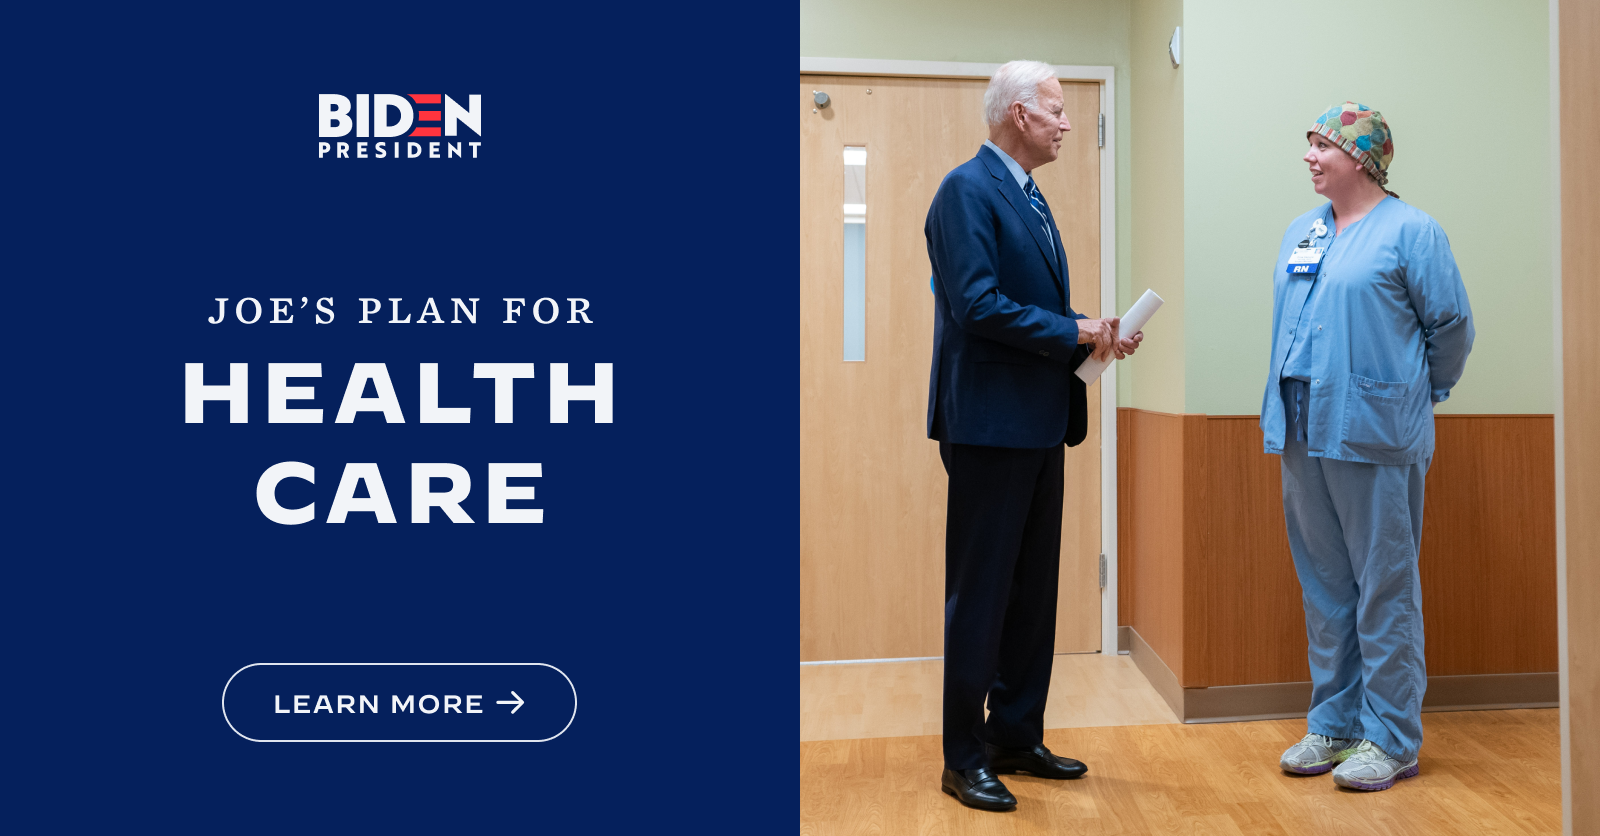 Biden's Healthcare reforms